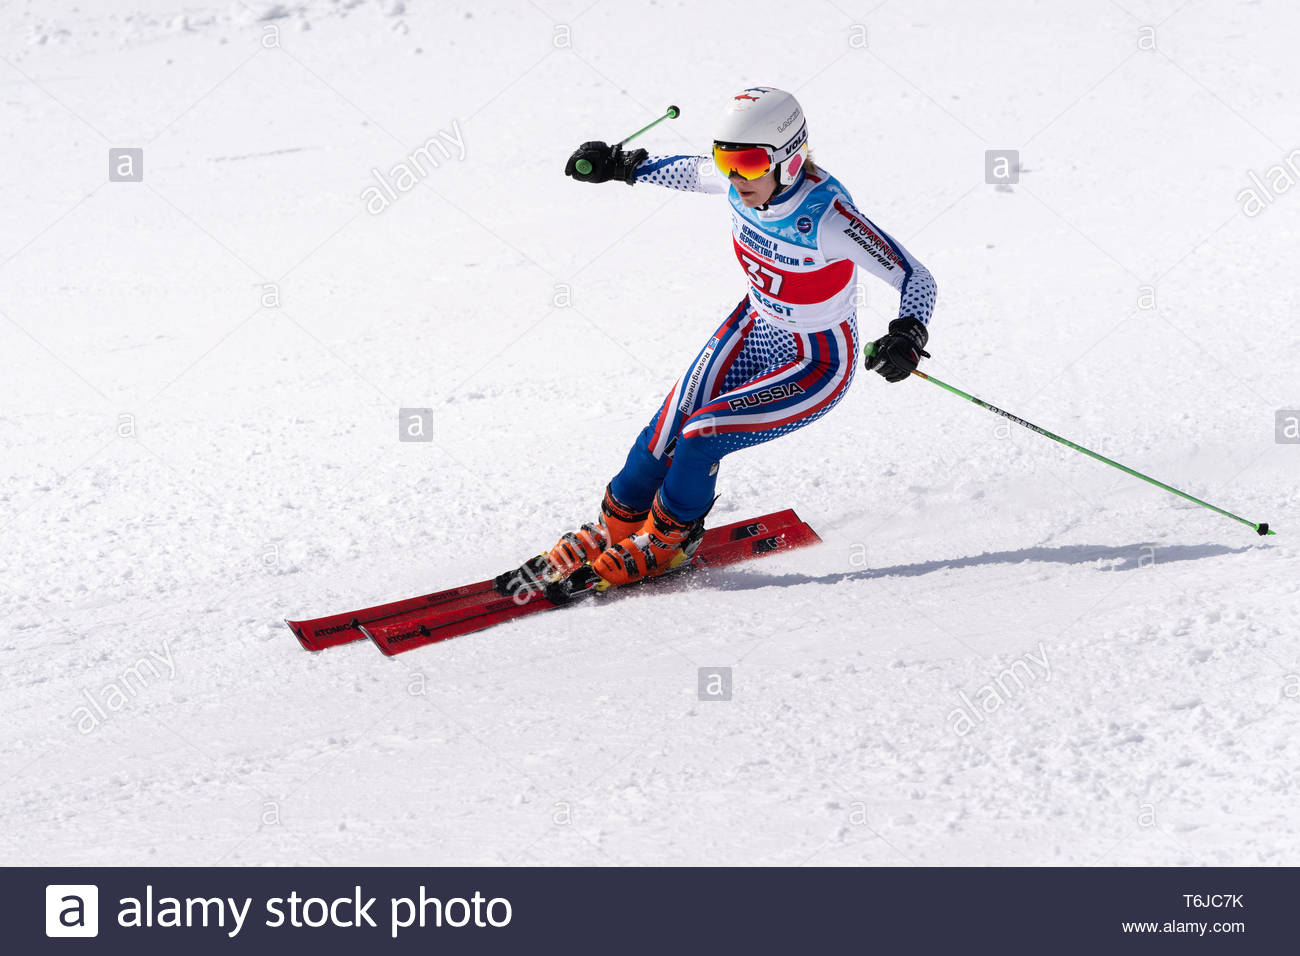 KAMCHATKA PENINSULA, RUSSIA - APRIL 1, 2019: Mountain skier Perfilova Ekaterina (Krasnoyarsk Territory) skiing down snowy mountain slope. Russian Wome - Stock Image